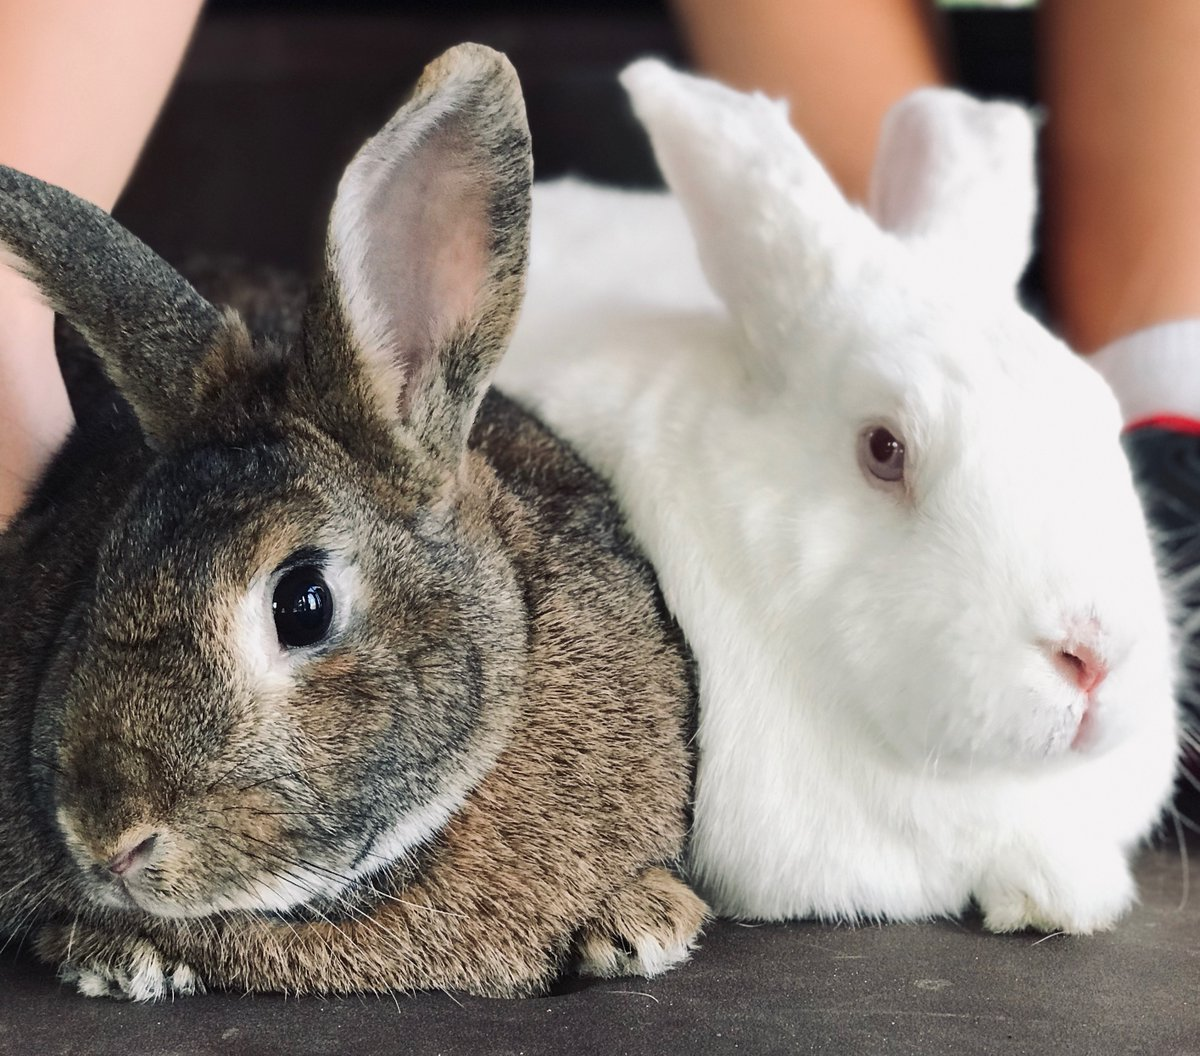 When you sneak back into the house at 3 am, but your parents be waiting at the door like...   Theodore, Fred   #rabbit #rabbits #rabbitlife #bunny #bunnies #bunnyrabbit #bunnylife #pet #pets #cute #houserabbit #houserabbits